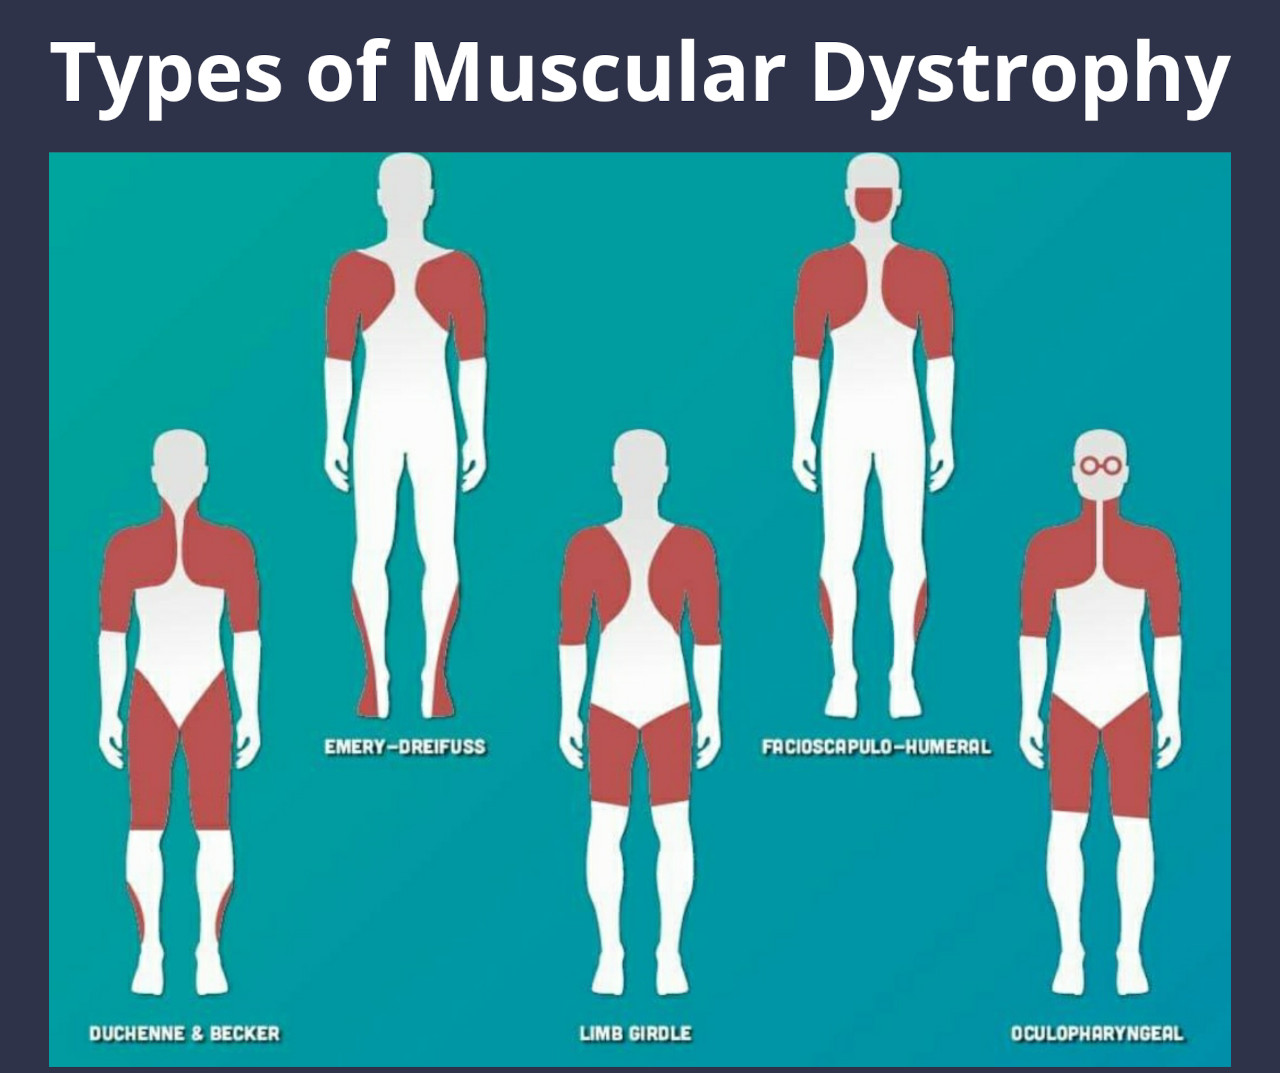 Types of Muscular Dystrophy